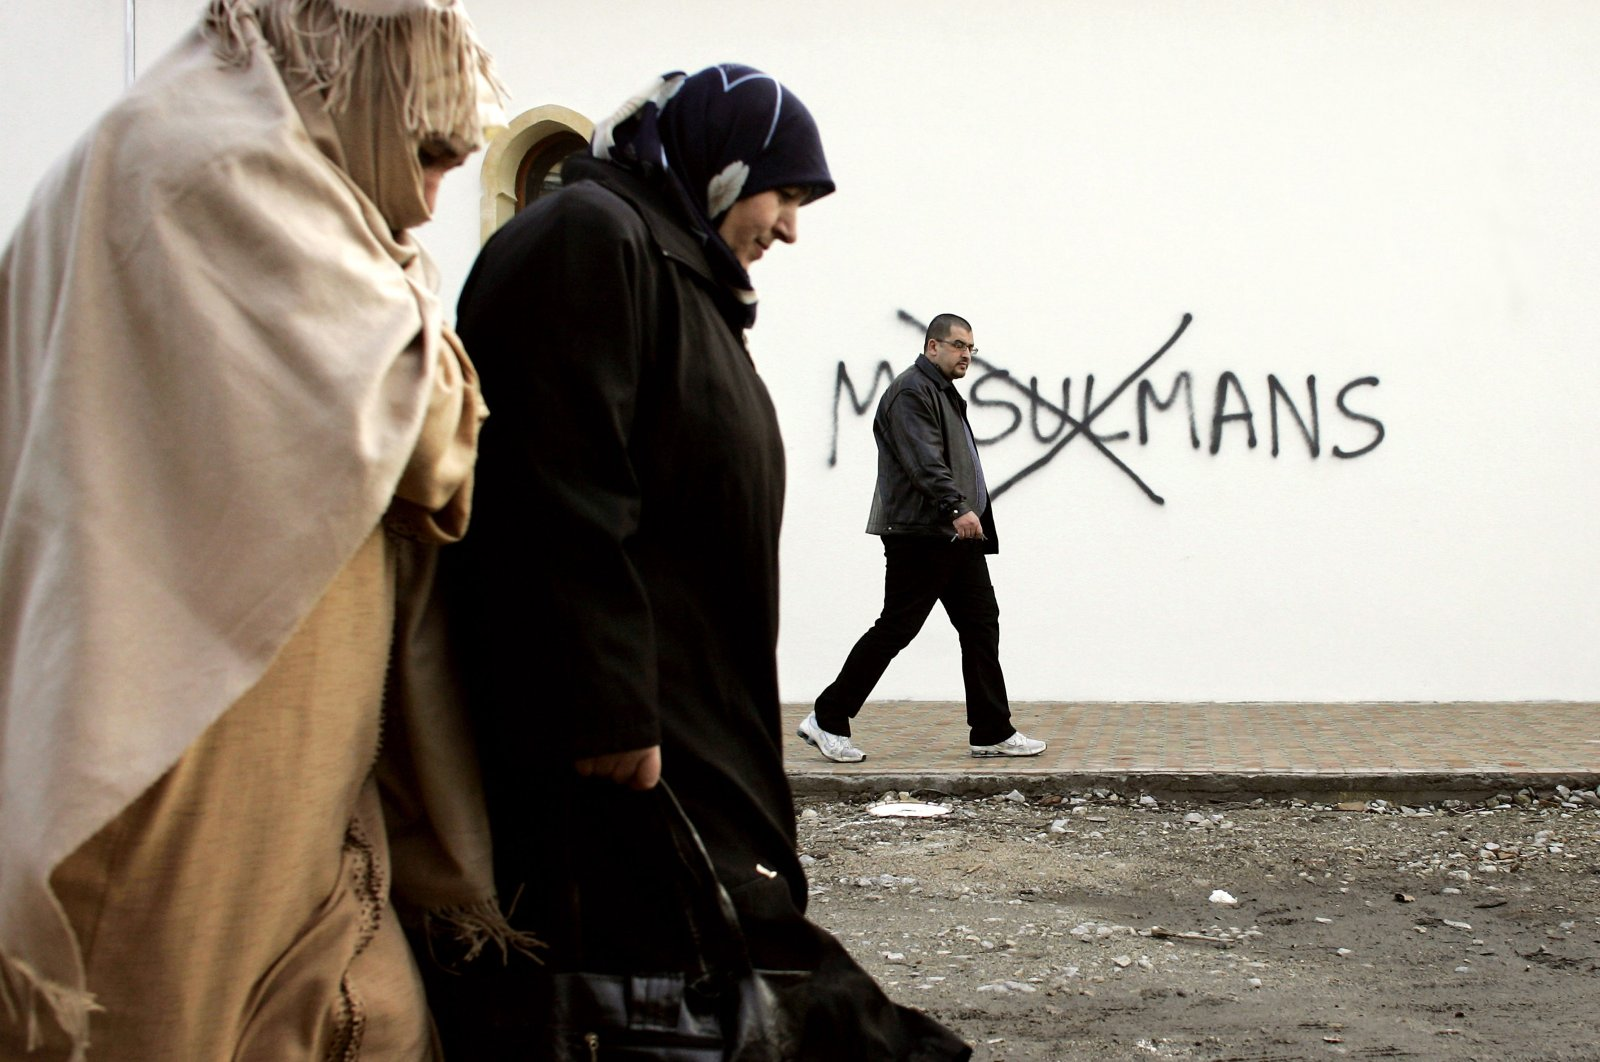 "In this Feb. 8, 2010 file photo, Muslim residents walk past racial slurs painted on the walls of a mosque in the town of Saint-Etienne, central France. Graffiti reads: ""Muslims"". (AP Photo)"